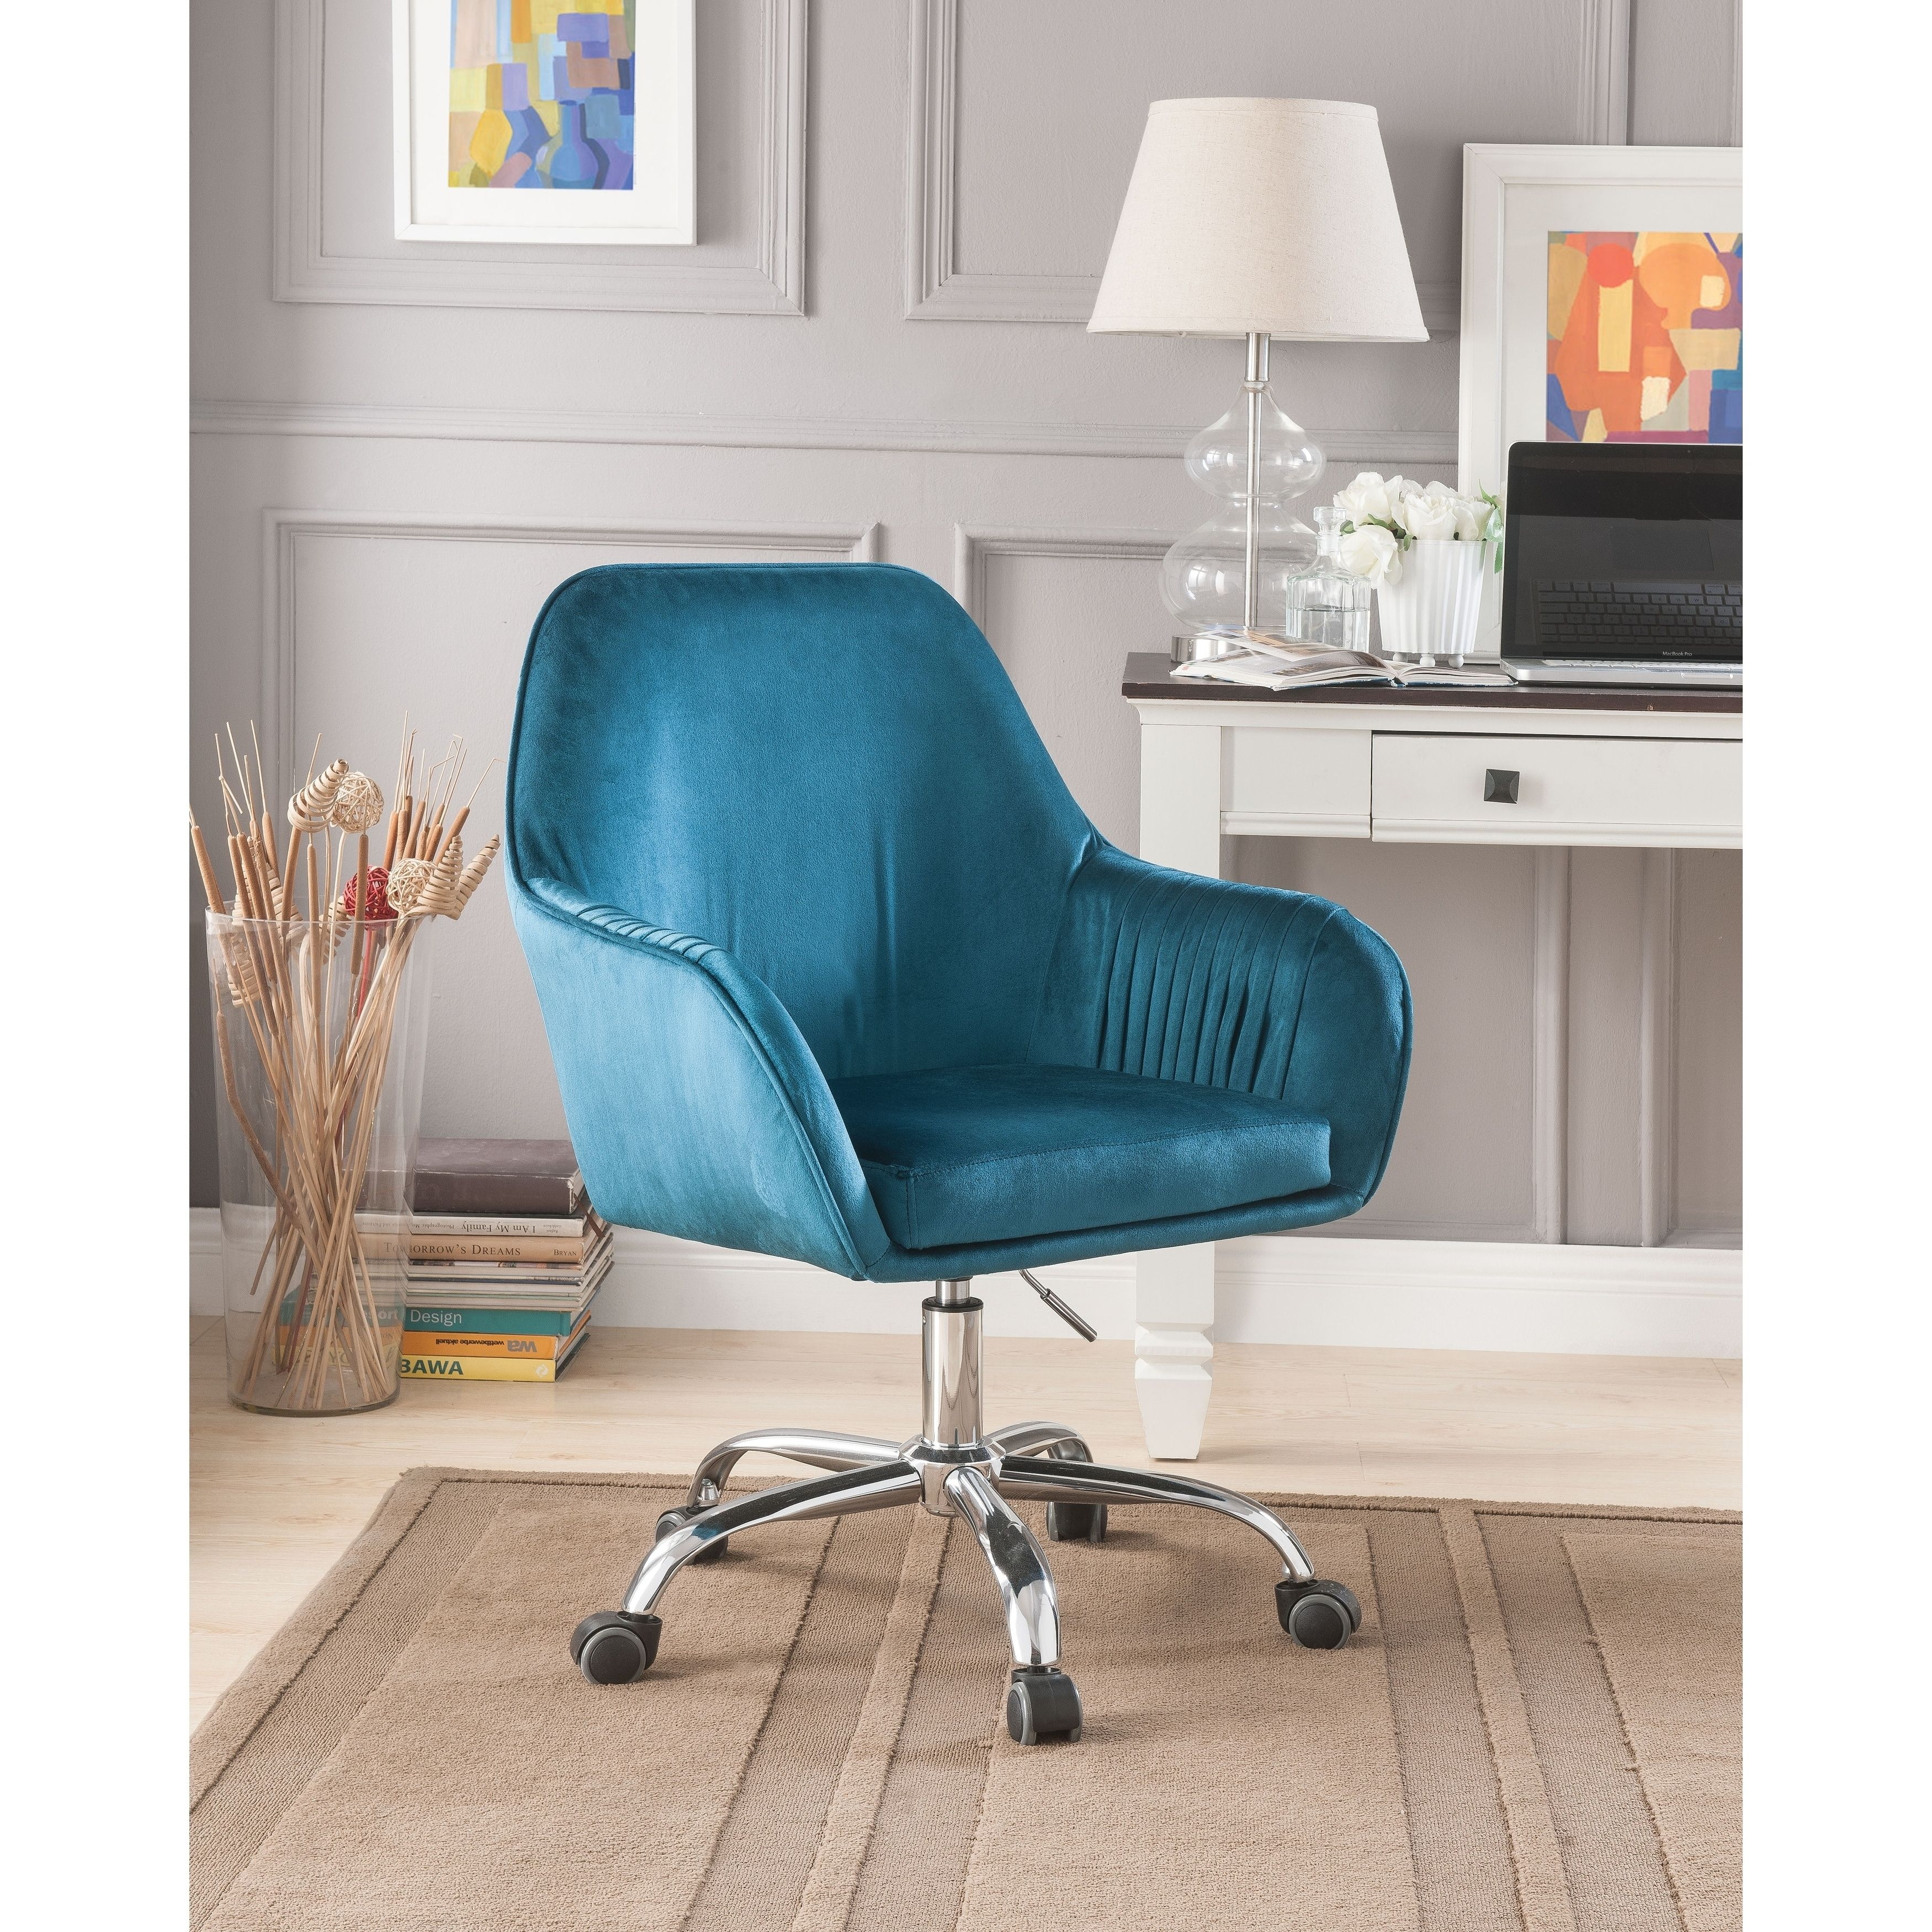 Adjustable Velvet Upholstered Swivel Office Chair With Slopped Armrests Blue And Silver Benzara Contemporary Office Chairs Velvet Office Chair Conference Chairs